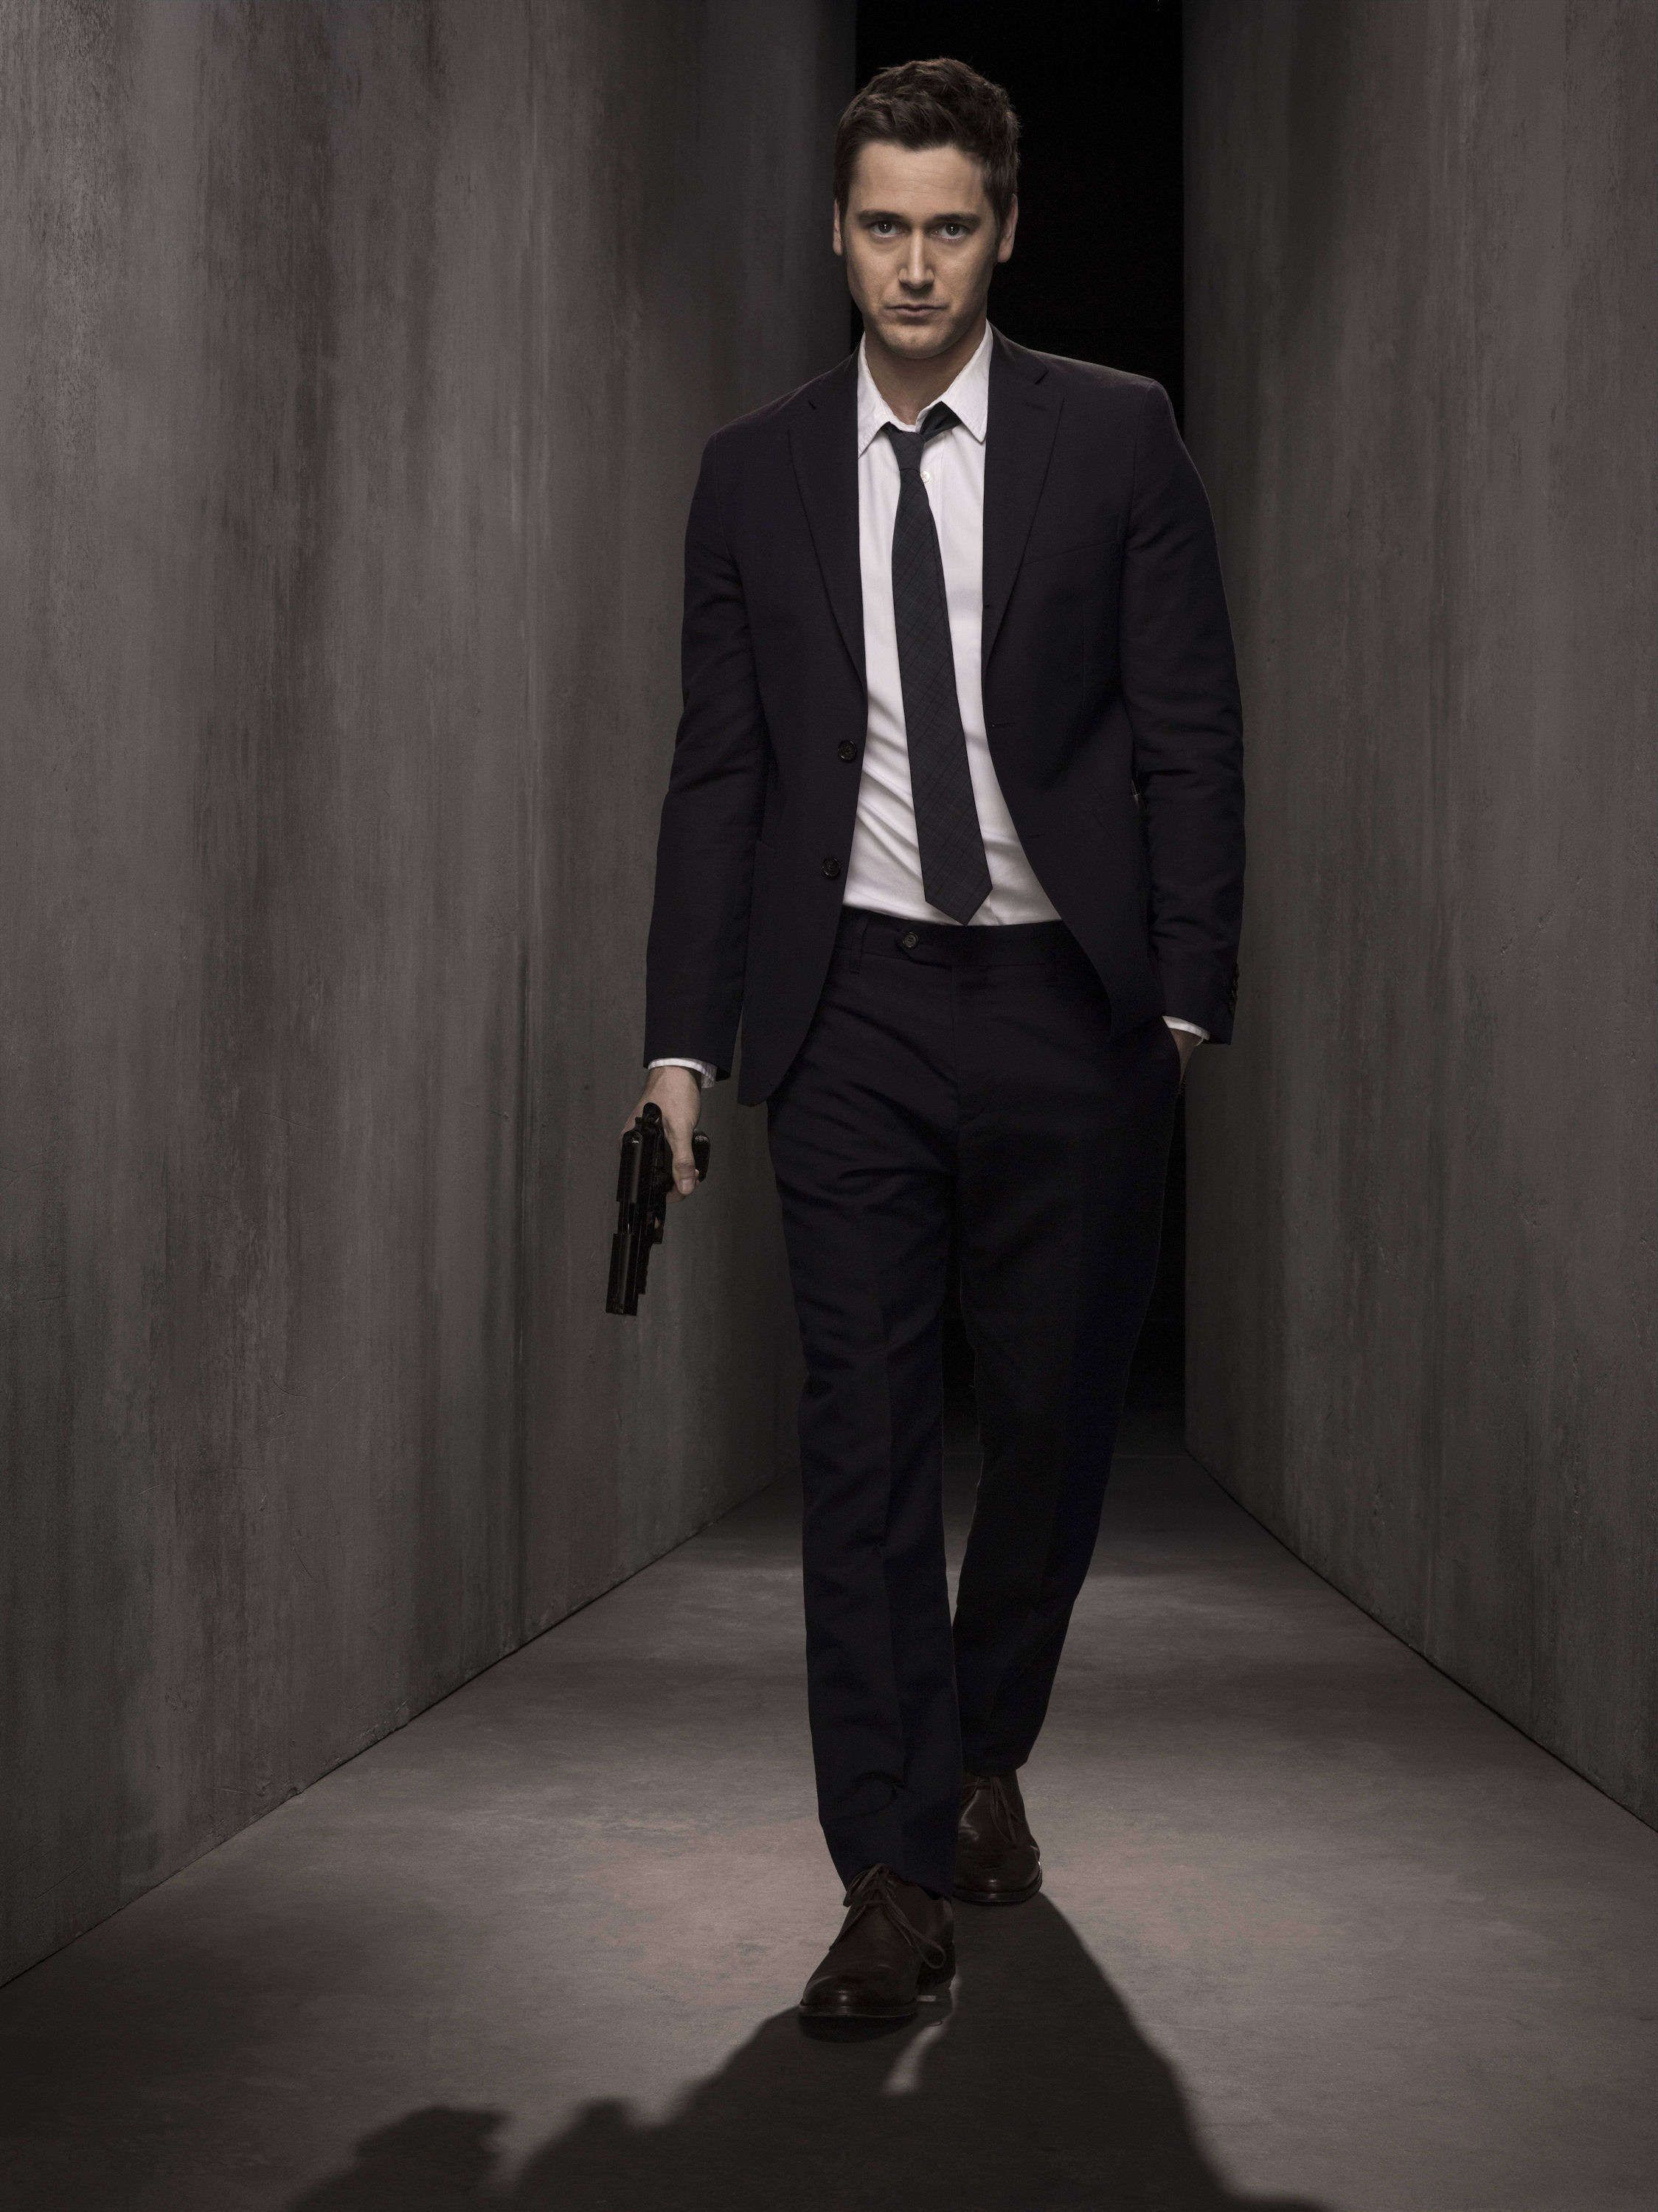 The blacklist ryan james eggold as tom keen the for Who plays tom keene on the blacklist